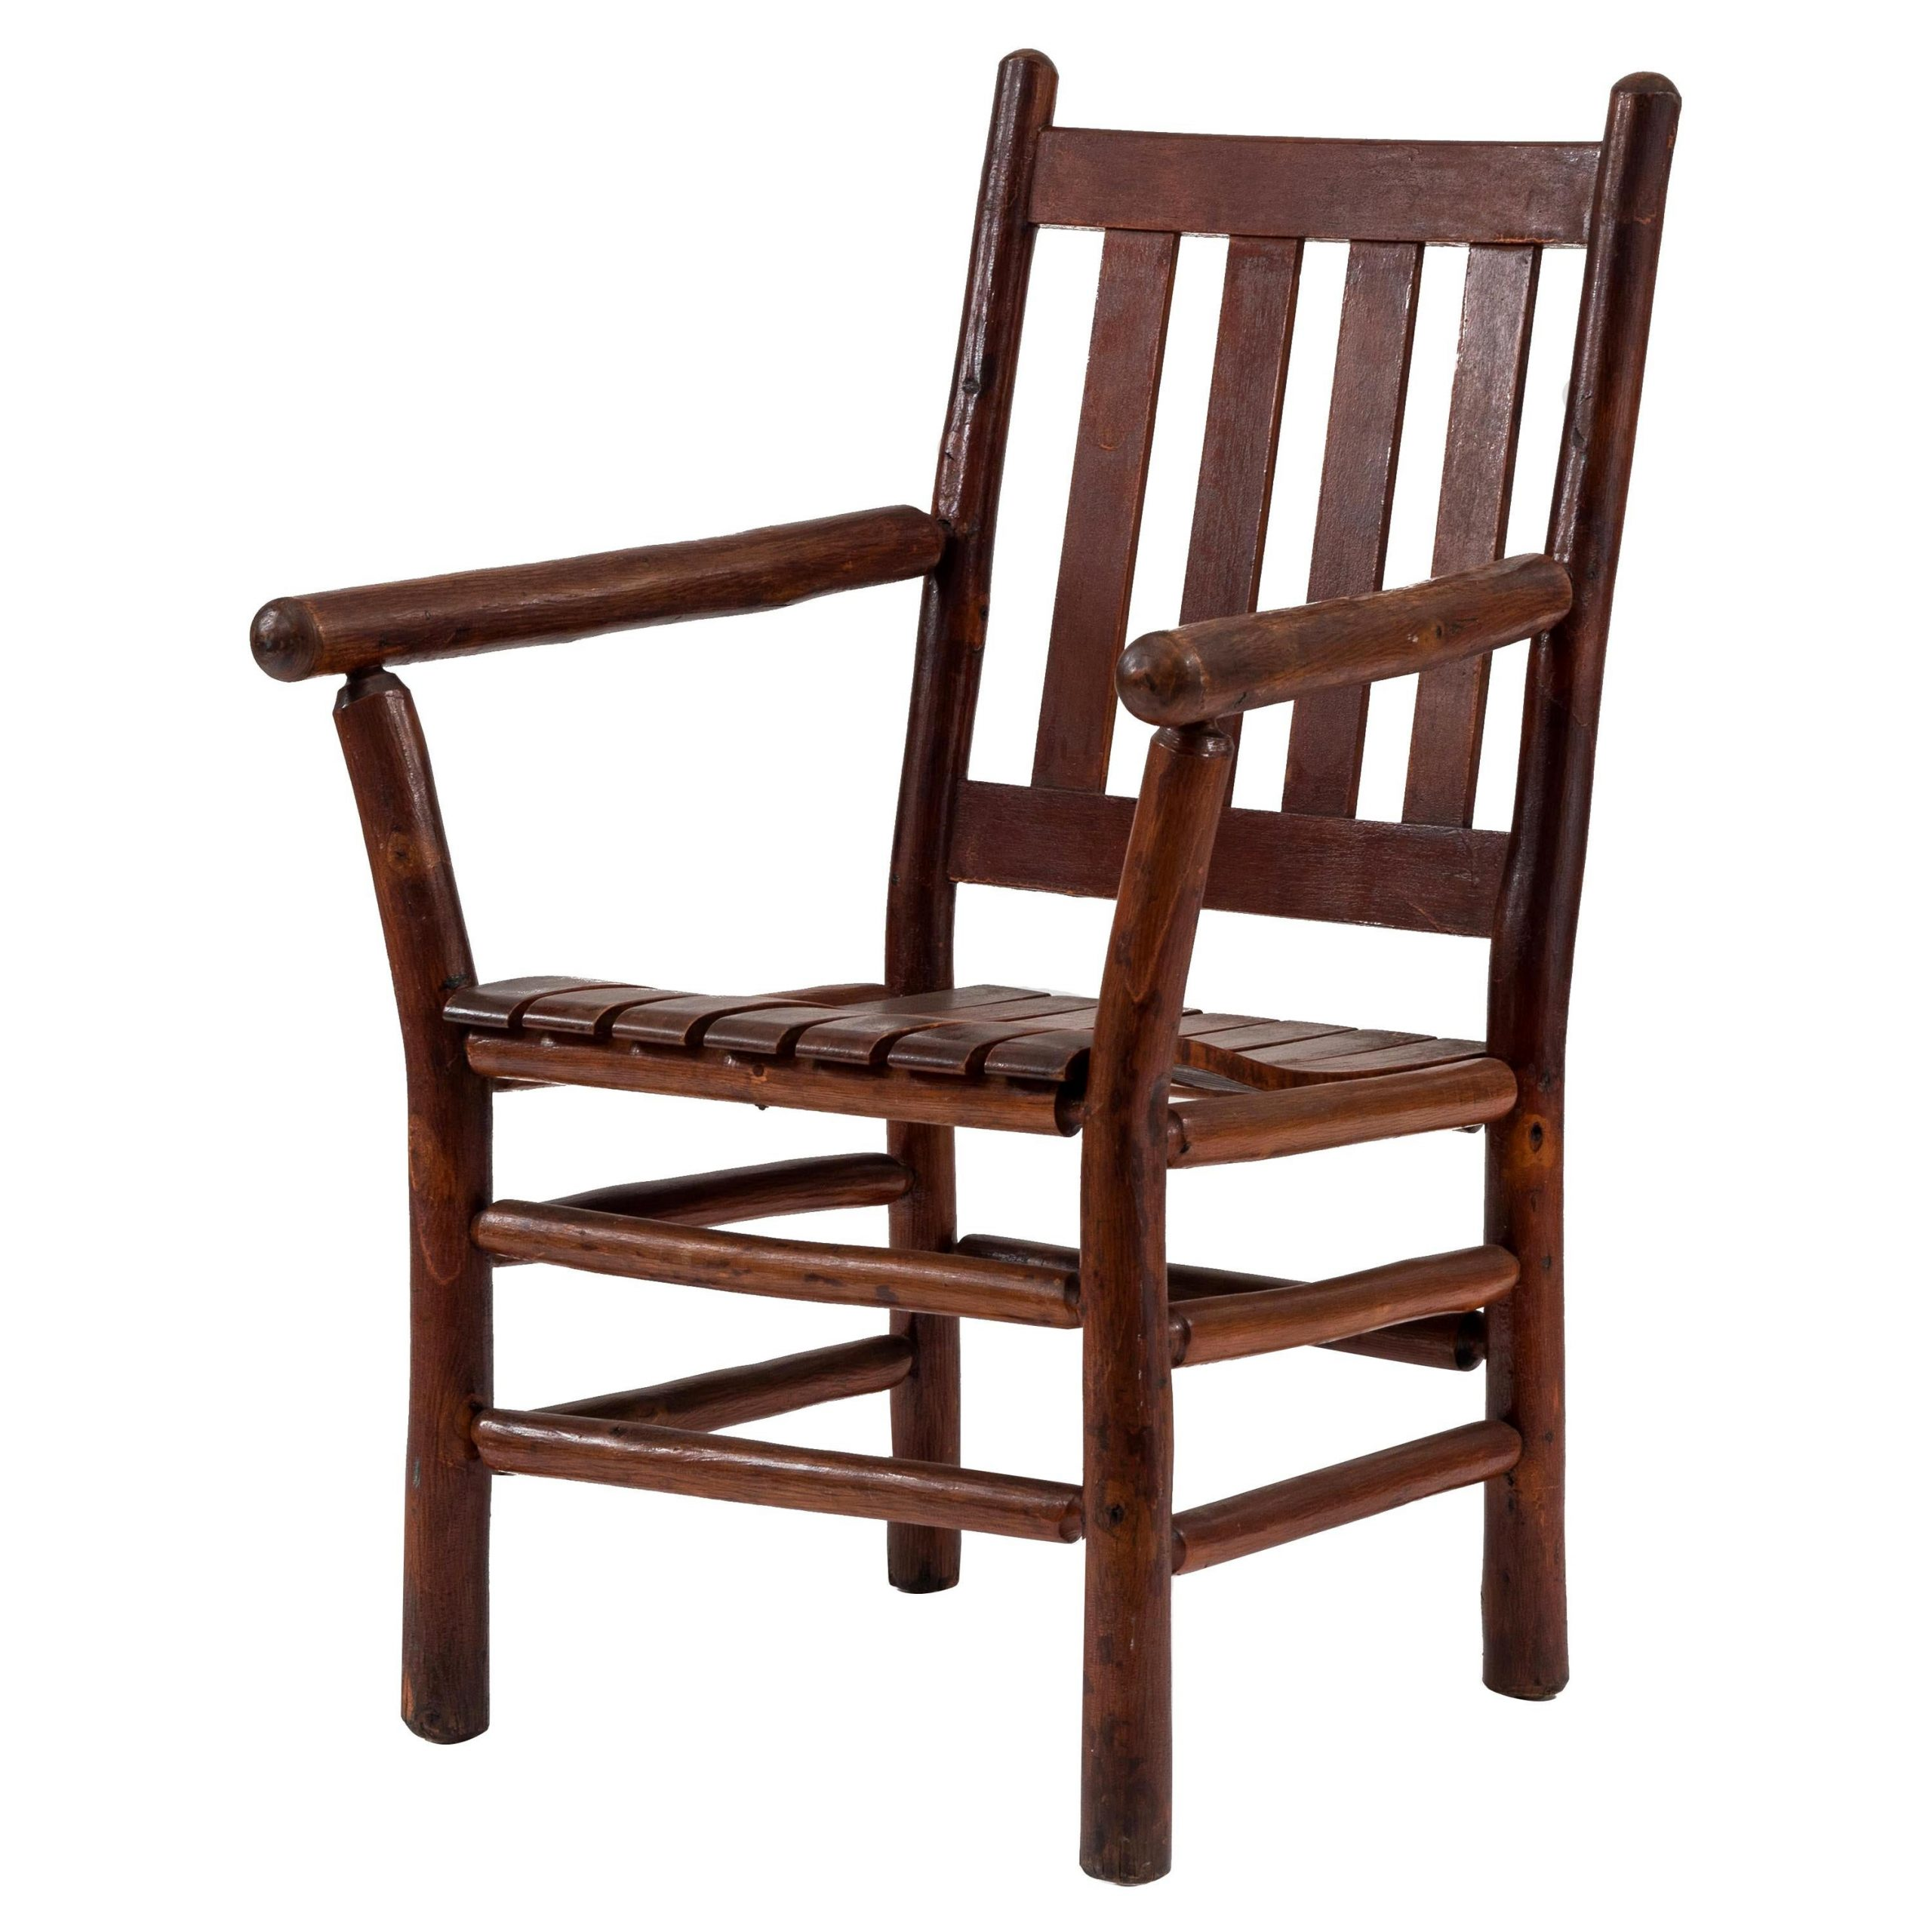 American Rustic Armchaircolumbus Hickory Furniture Co (View 11 of 20)